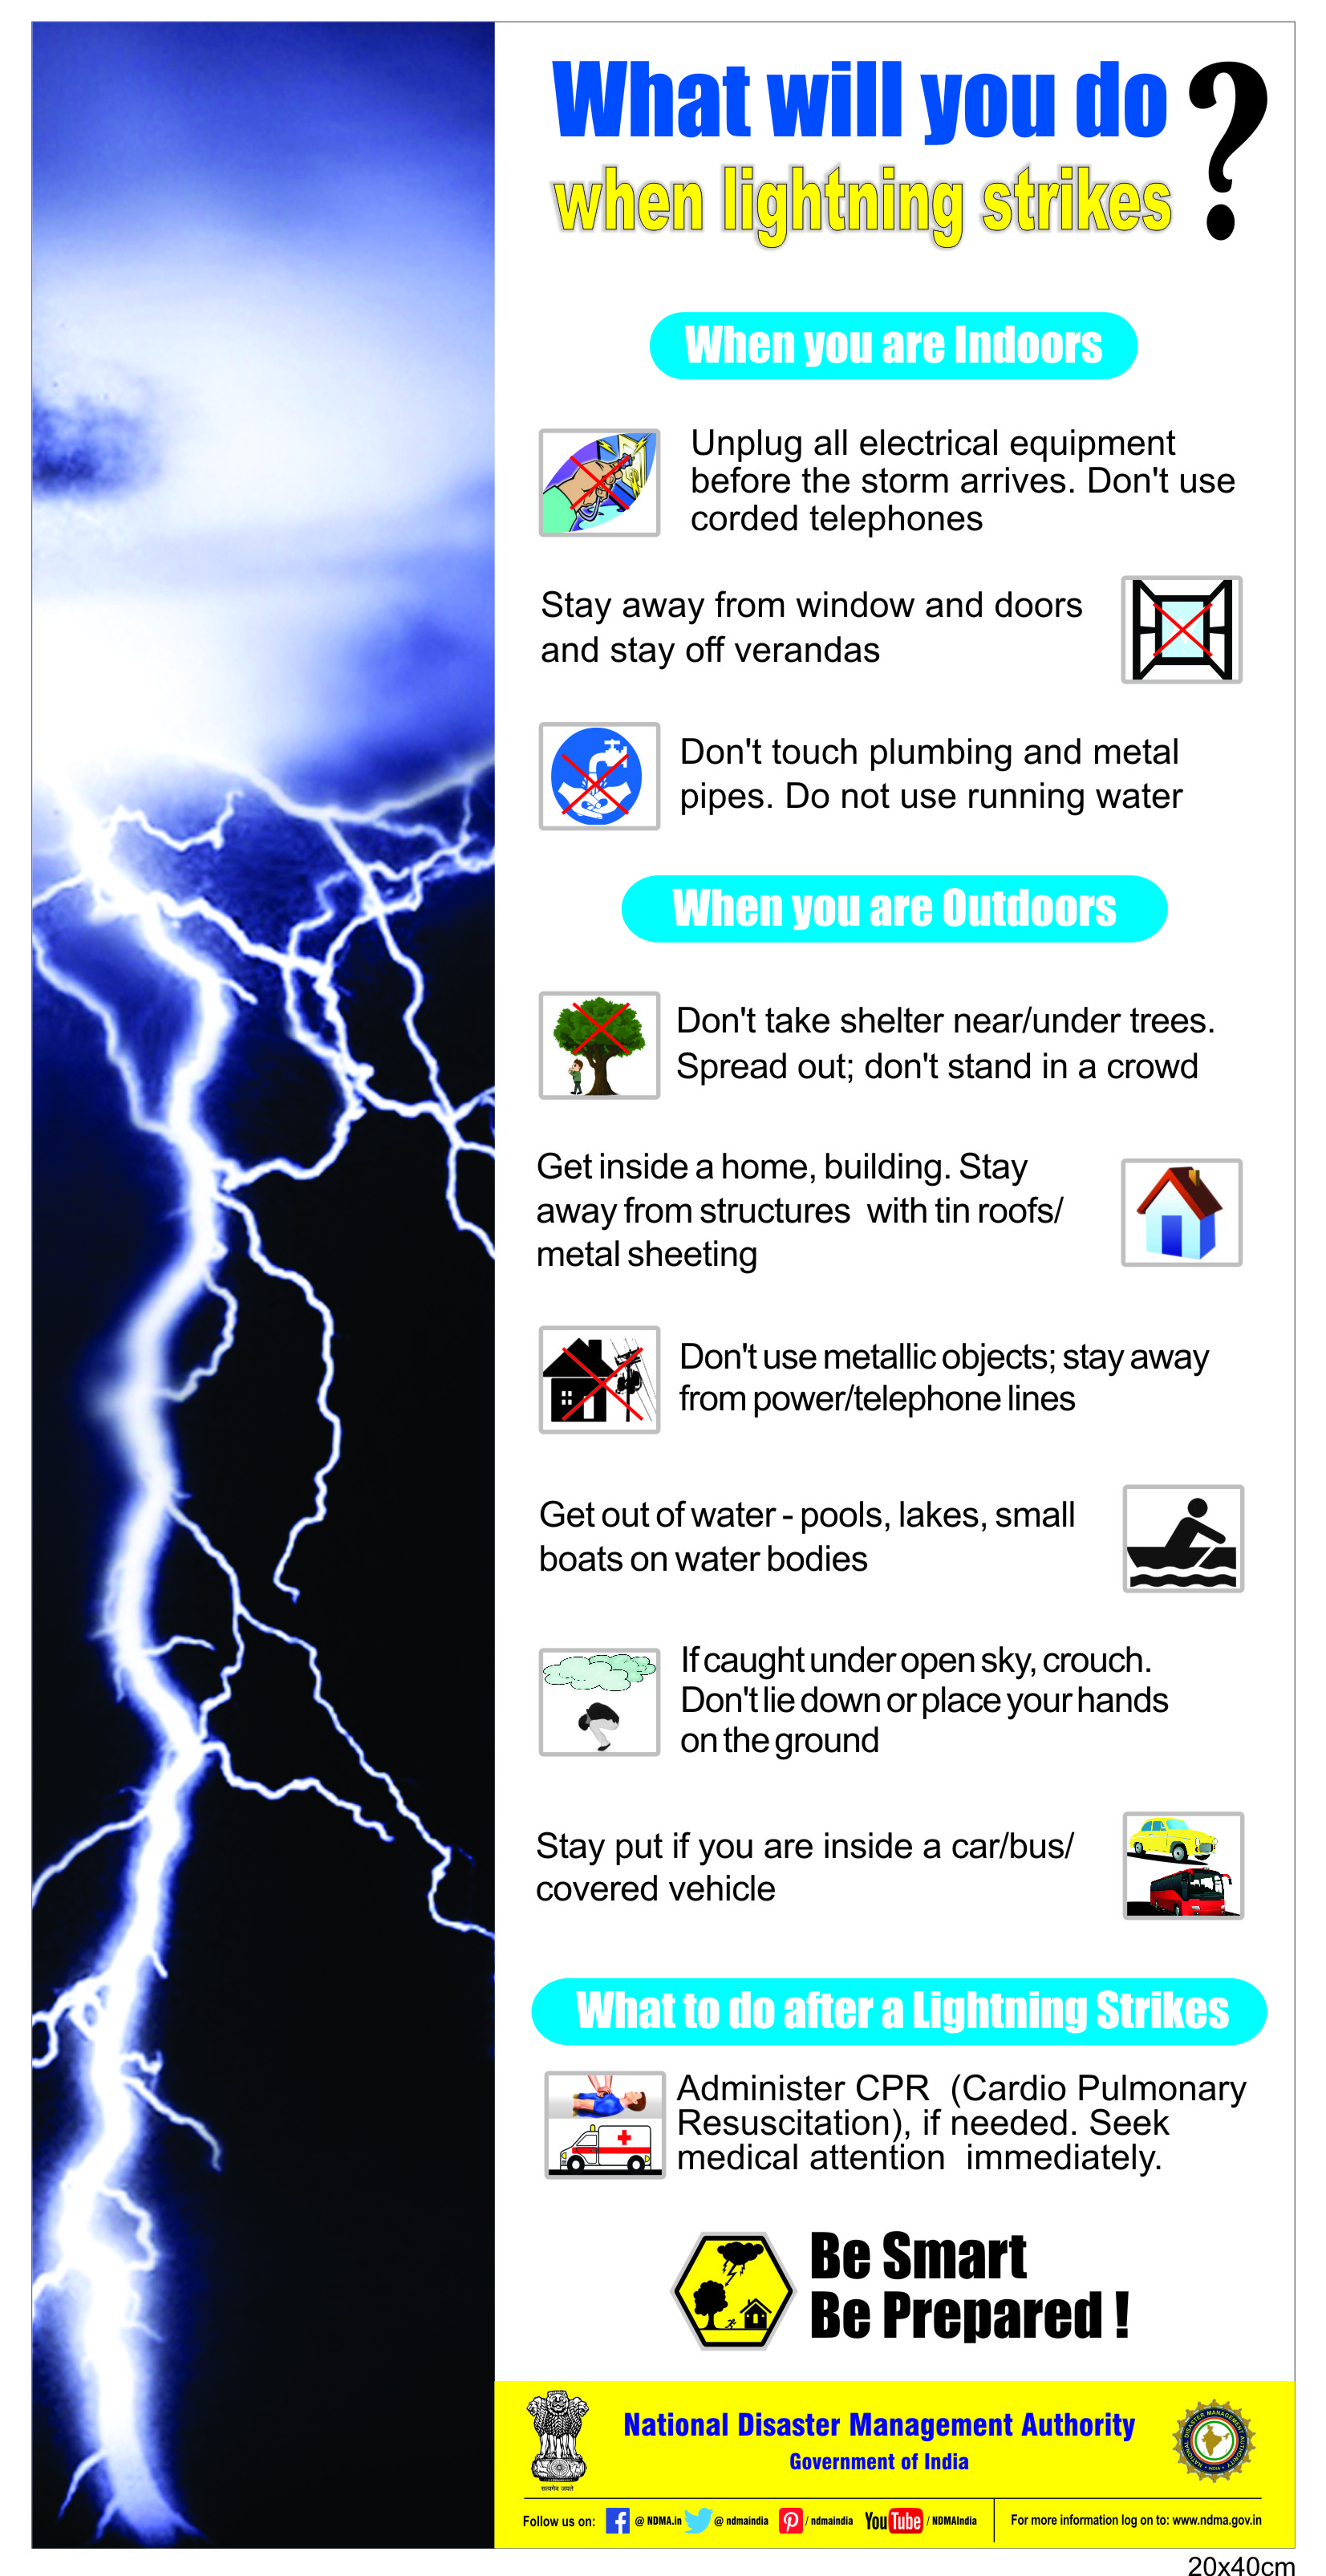 Do's and don'ts of lightning